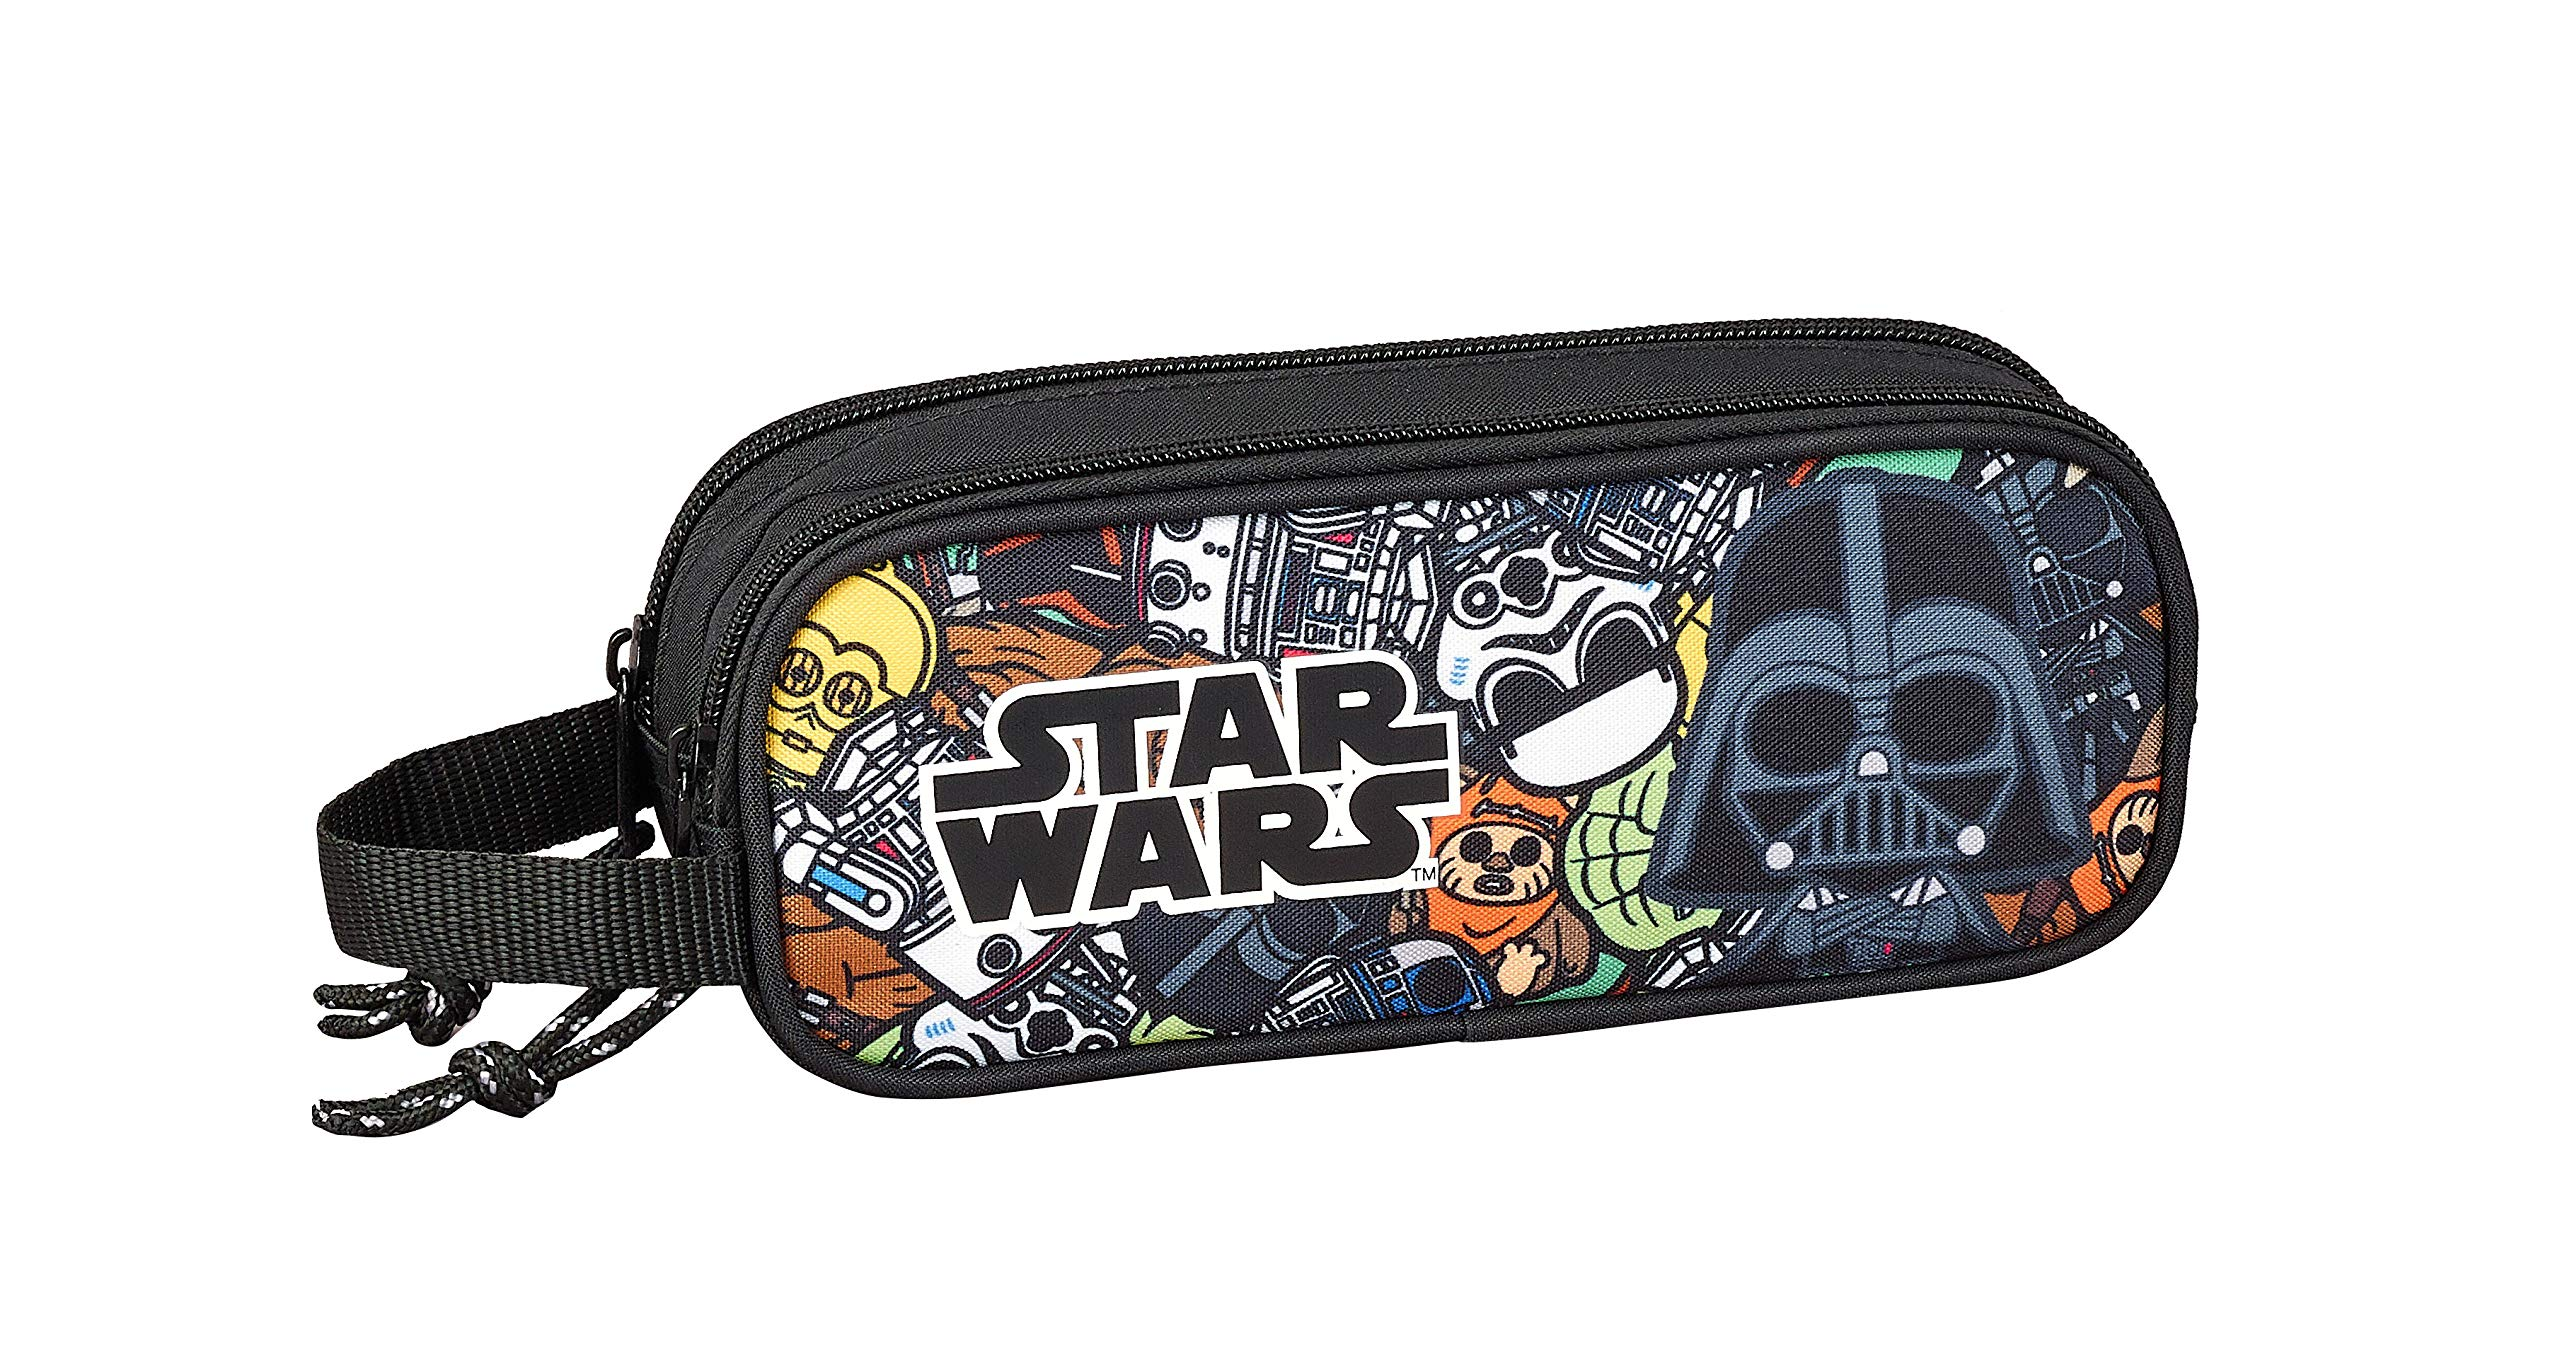 Star Wars Galaxy Oficial Estuche Escolar 210x60x80mm